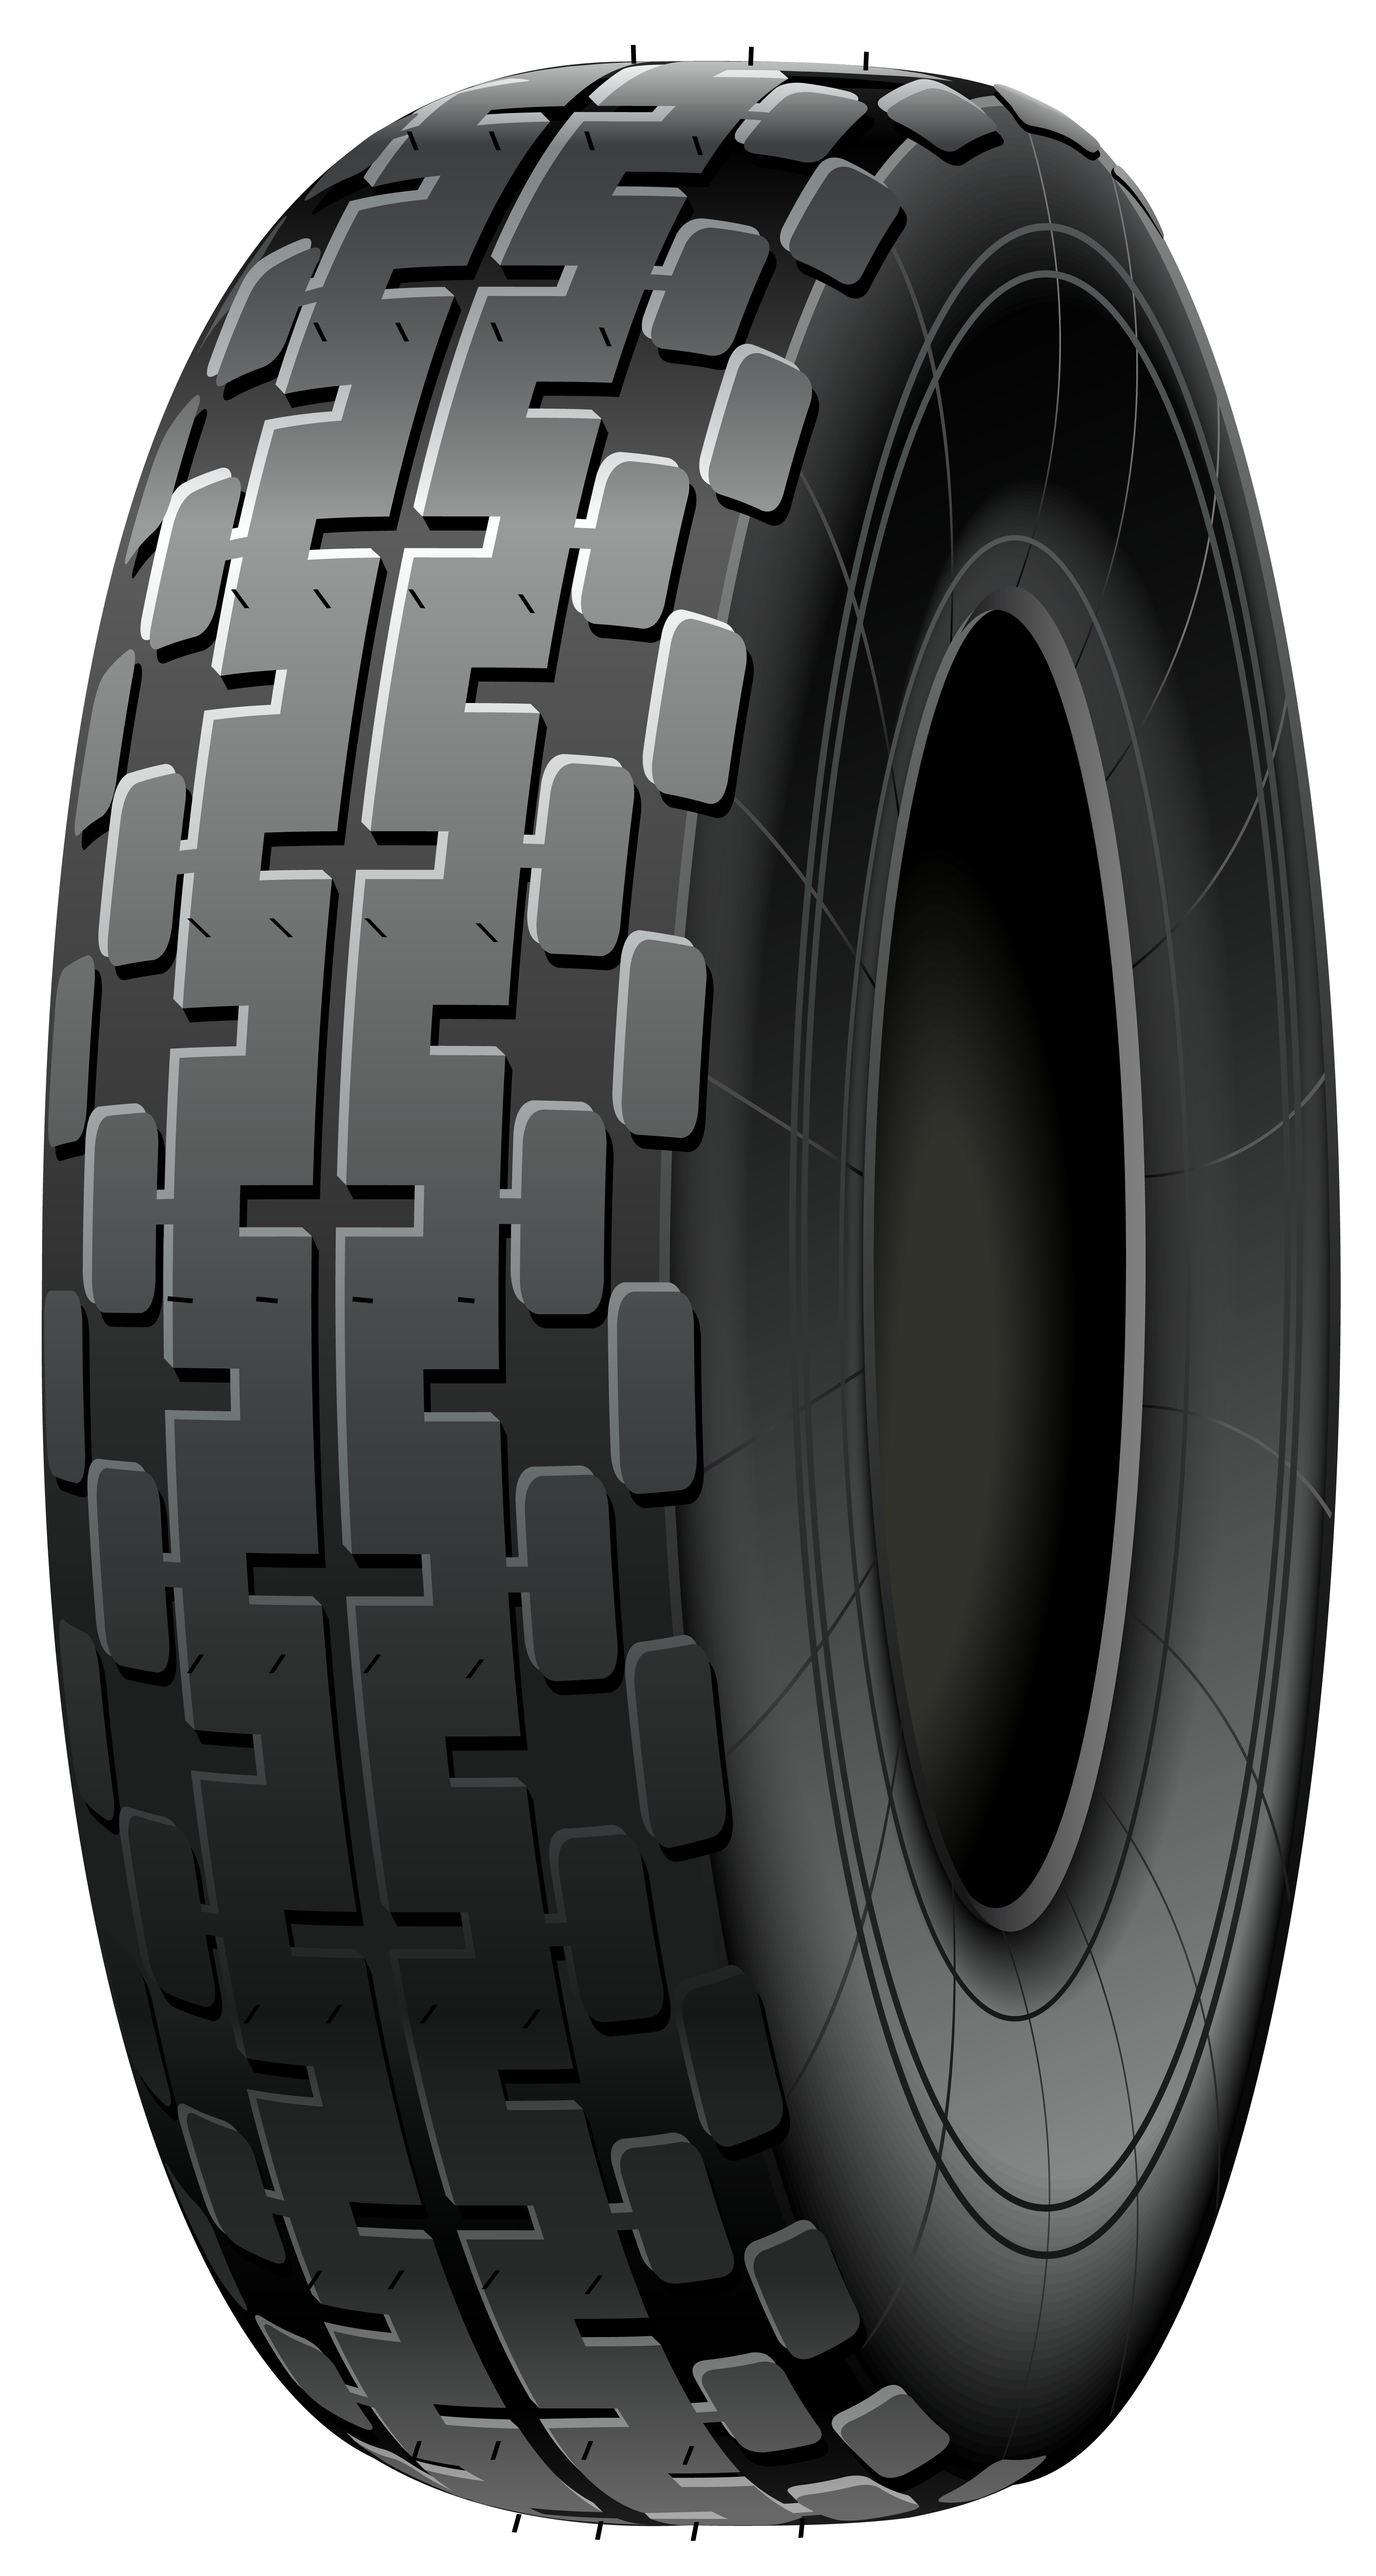 Car with tires clipart black and white jpg royalty free library Black Car Tire PNG Clip Art - Best WEB Clipart jpg royalty free library